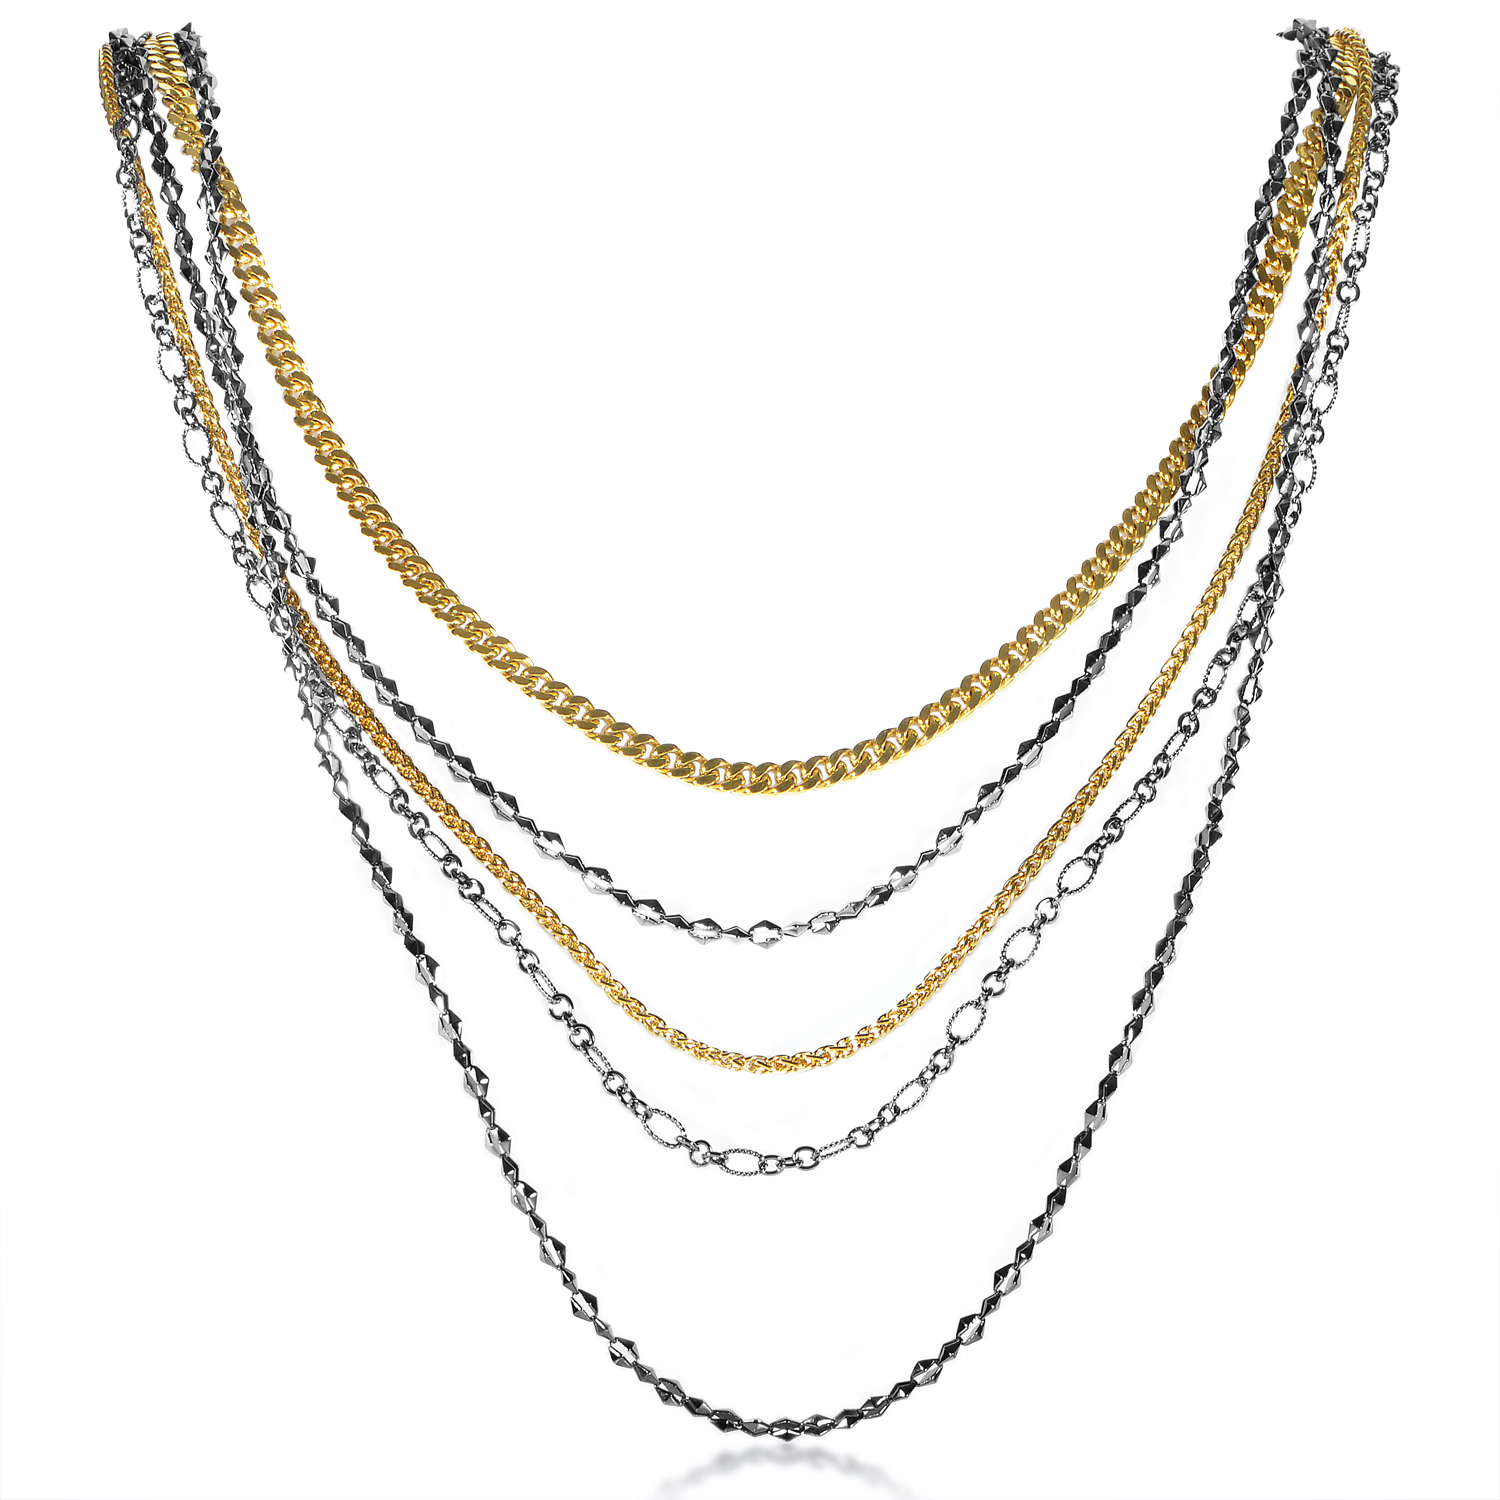 Superstud Women's Gold-Tone Sterling Silver Multi-Chain Necklace